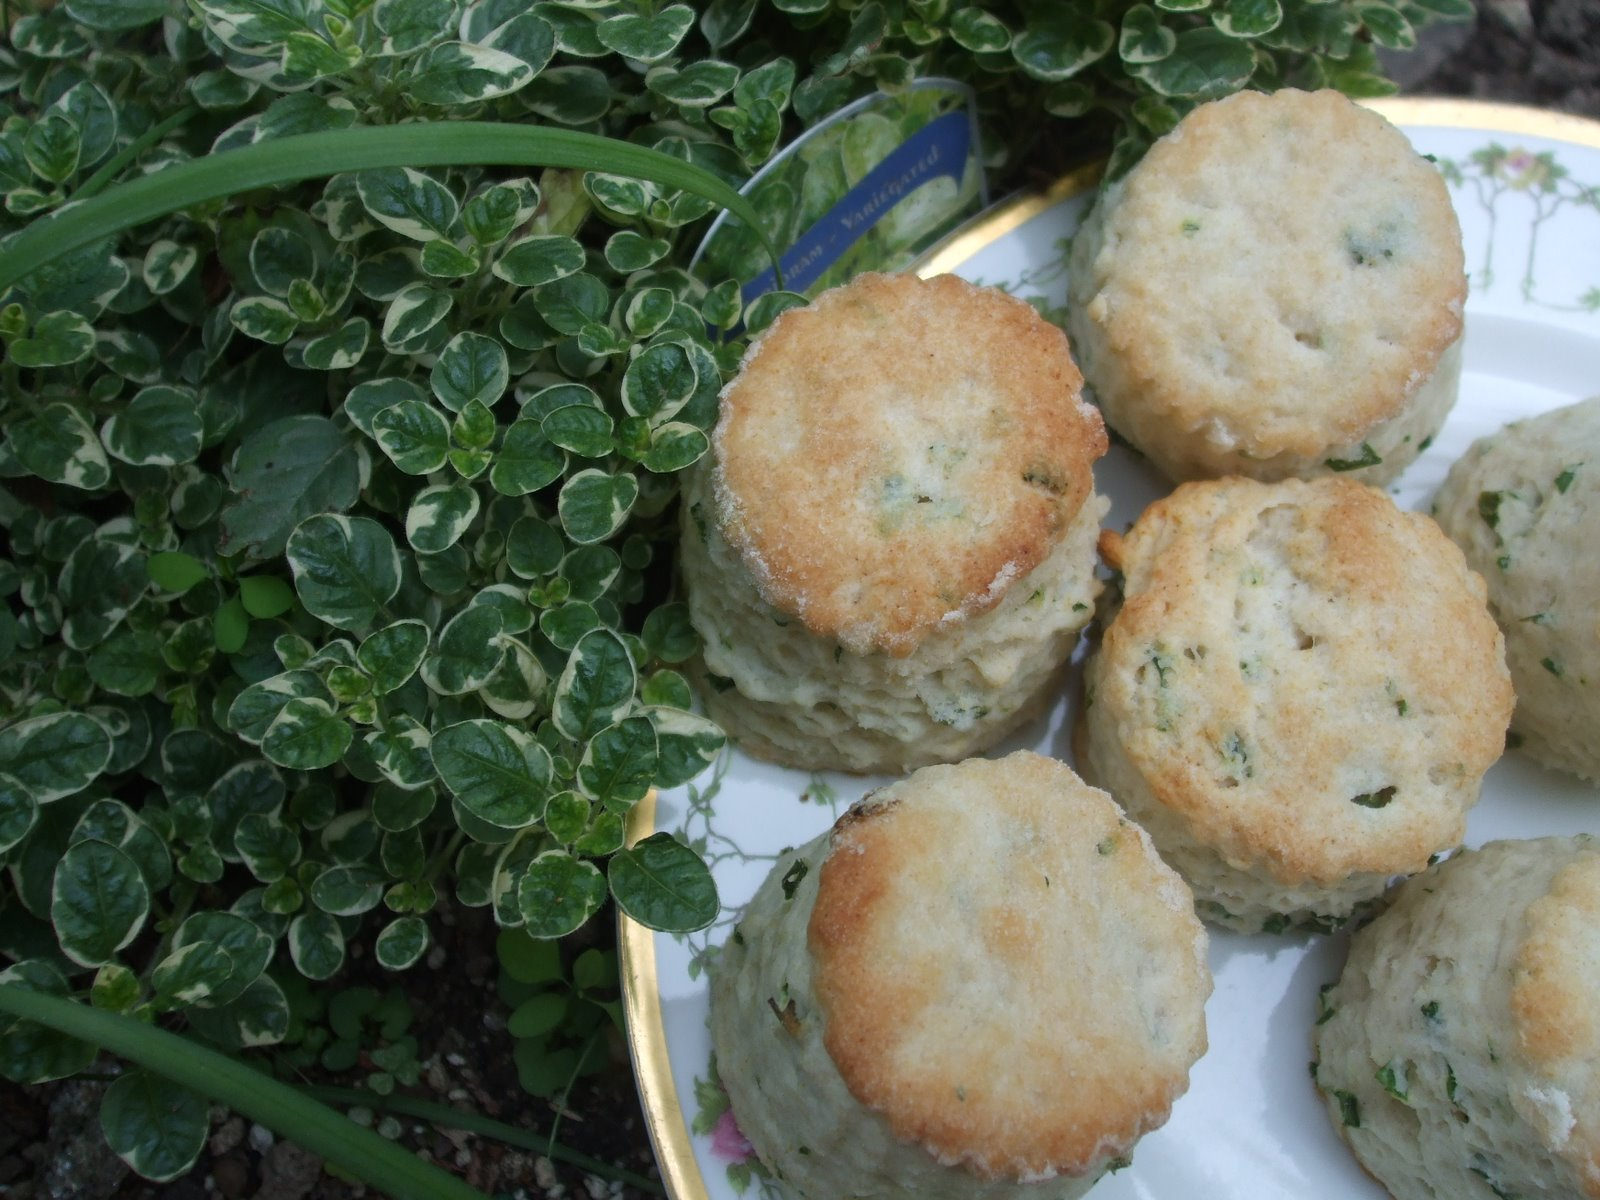 Rosemary's Sampler: Garden Fresh Herb Biscuits